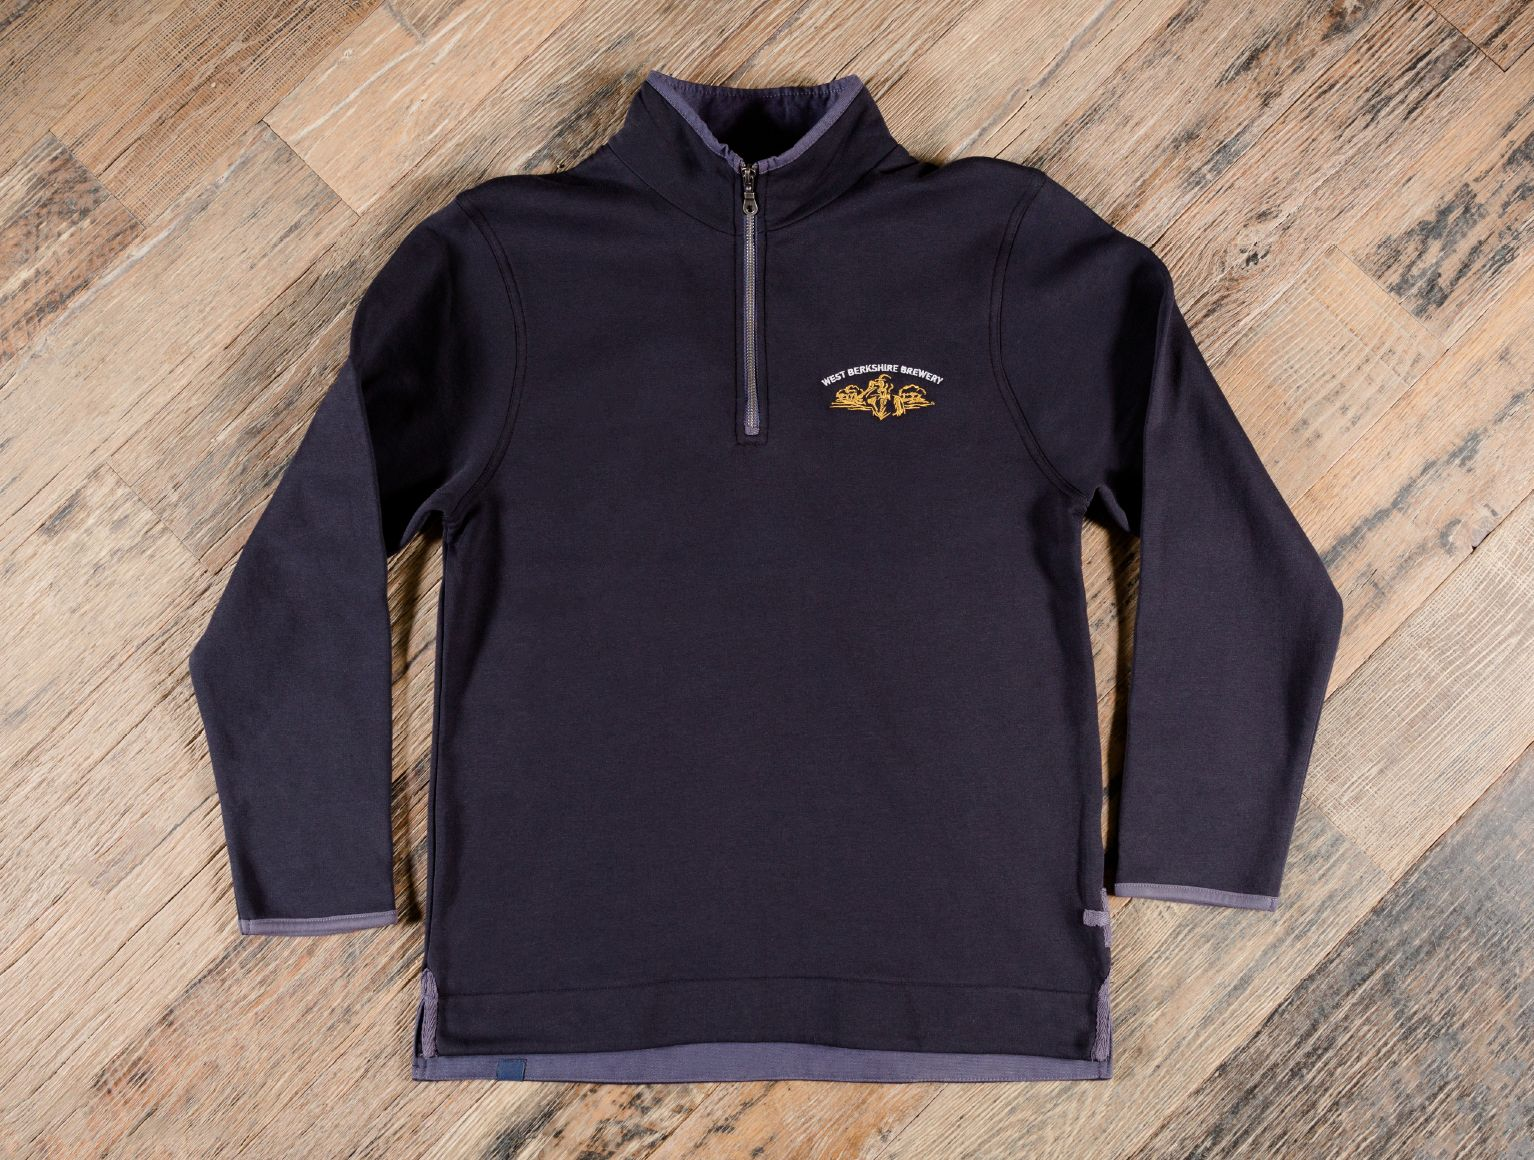 West berkshire brewery zipped sweater